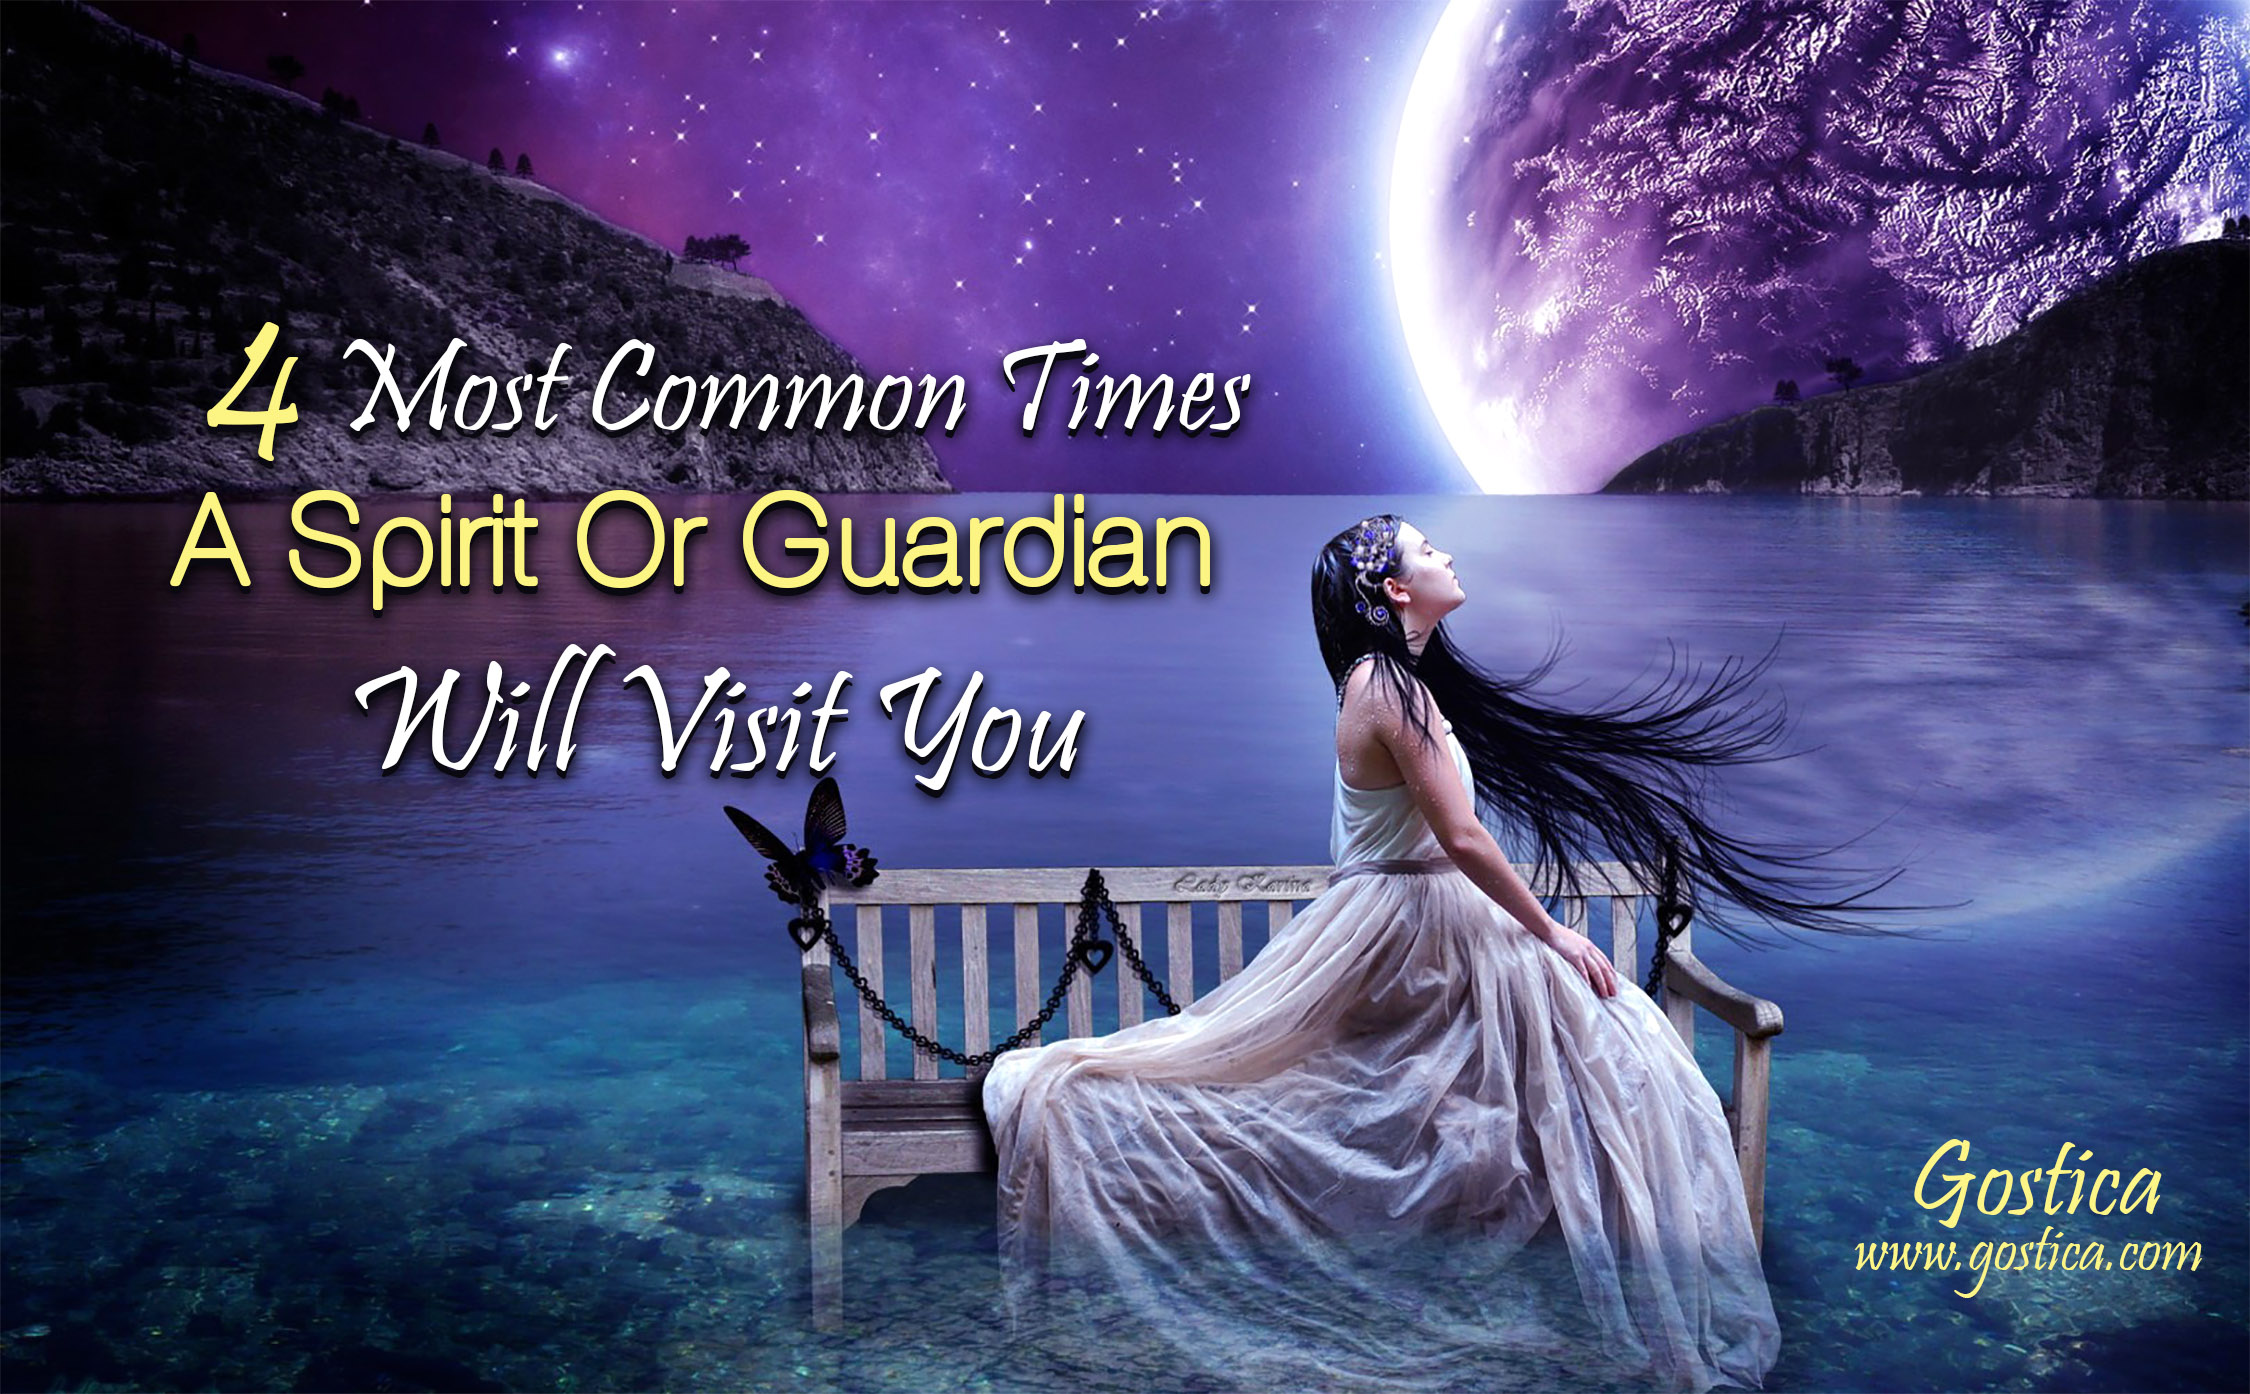 The-4-Most-Common-Times-A-Spirit-Or-Guardian-Will-Visit-You.jpg